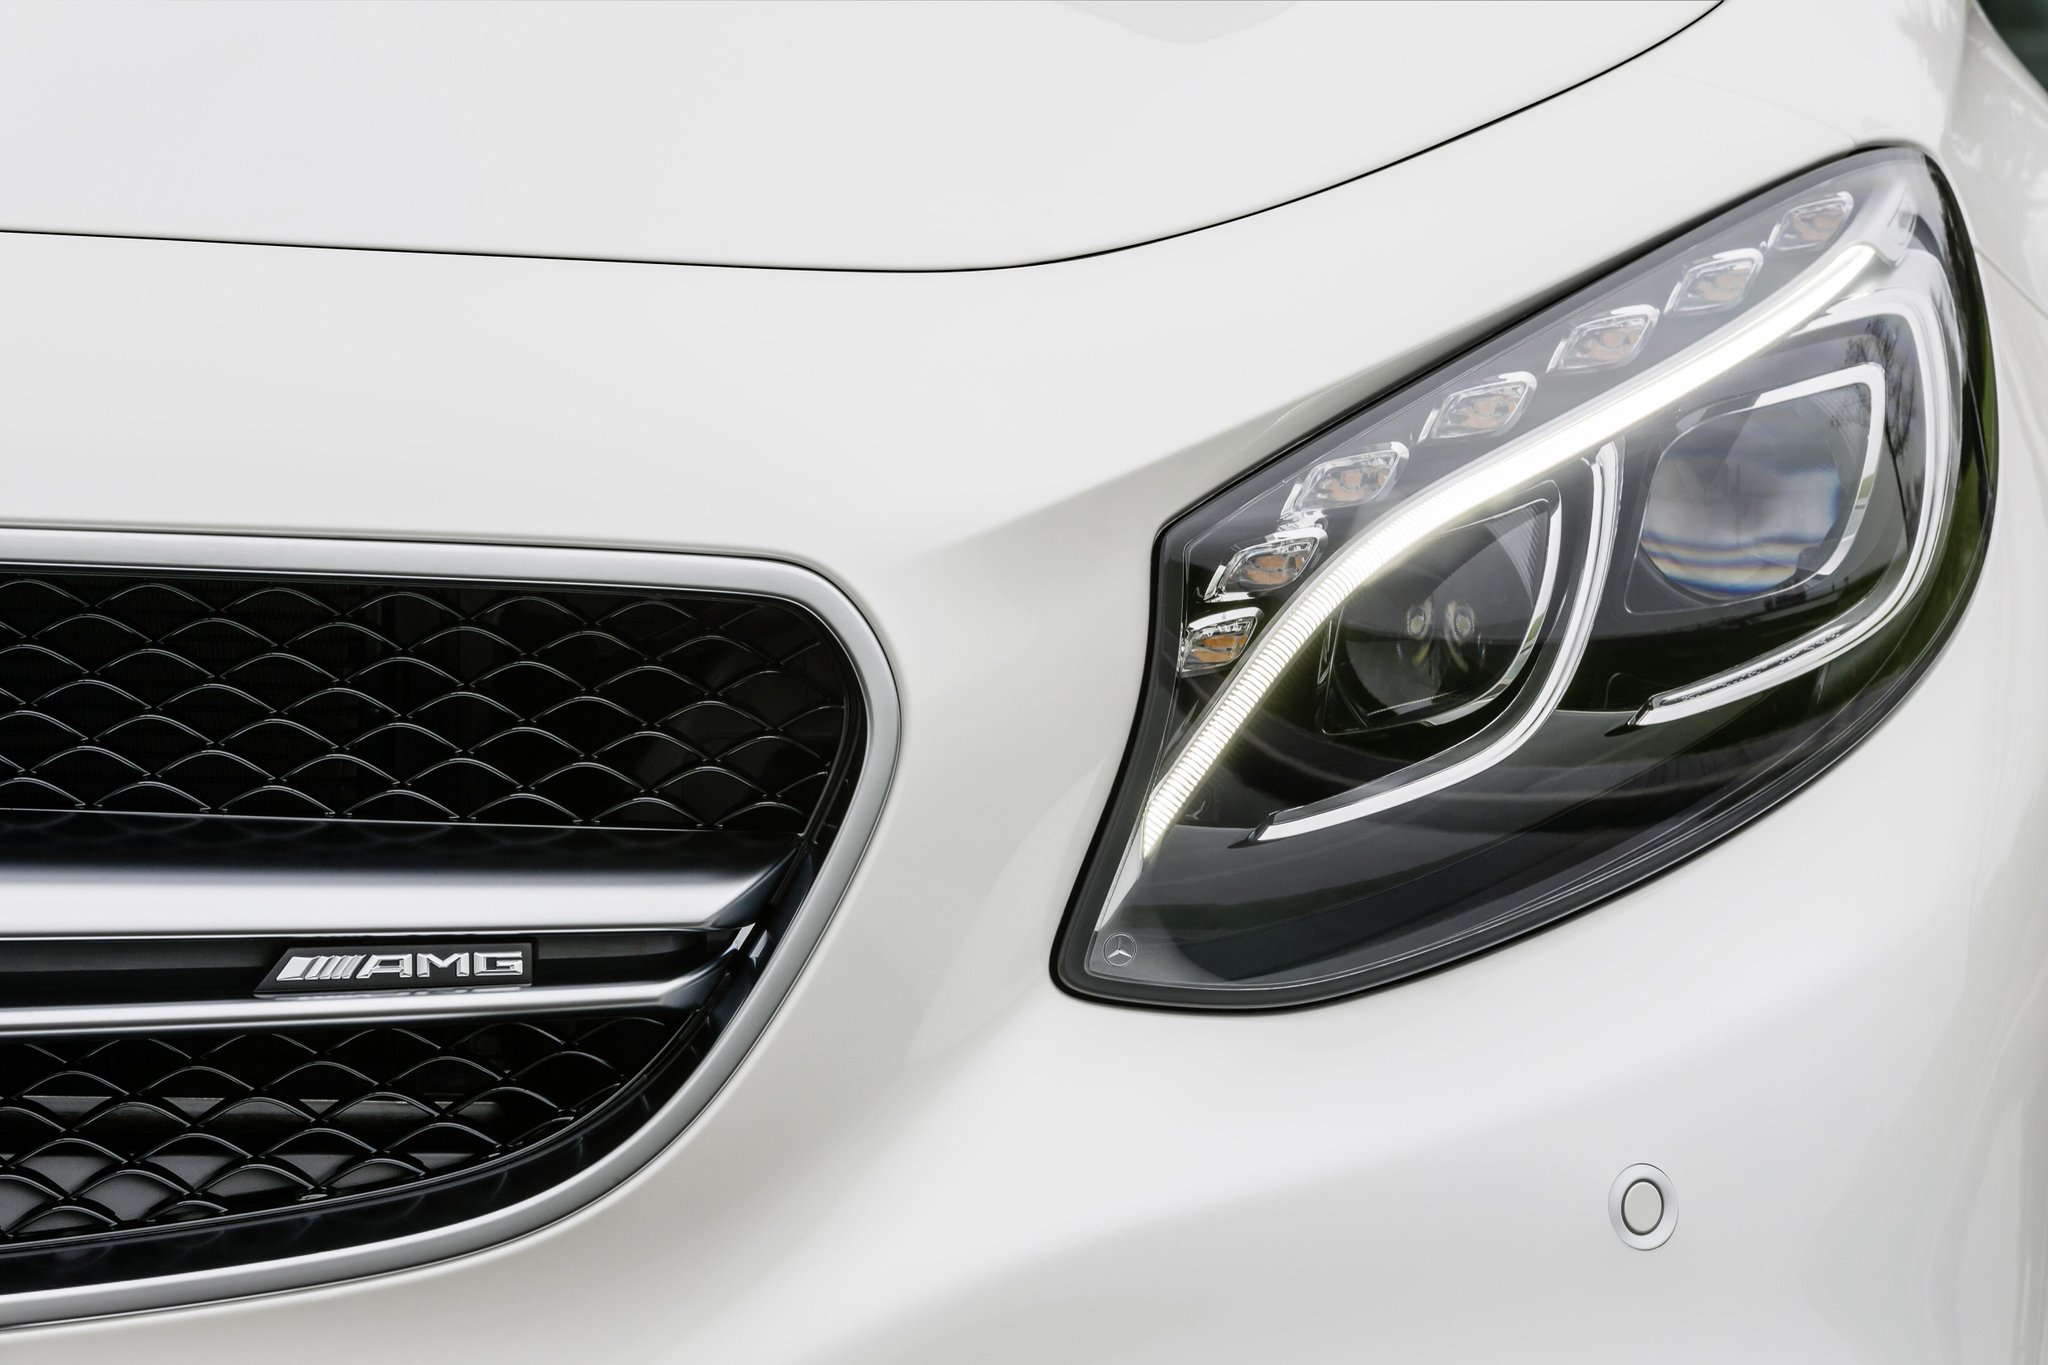 We've crammed 577bhp into our S 63 AMG Coupé. That's what we call powerful. http://t.co/qbcsILYgcn